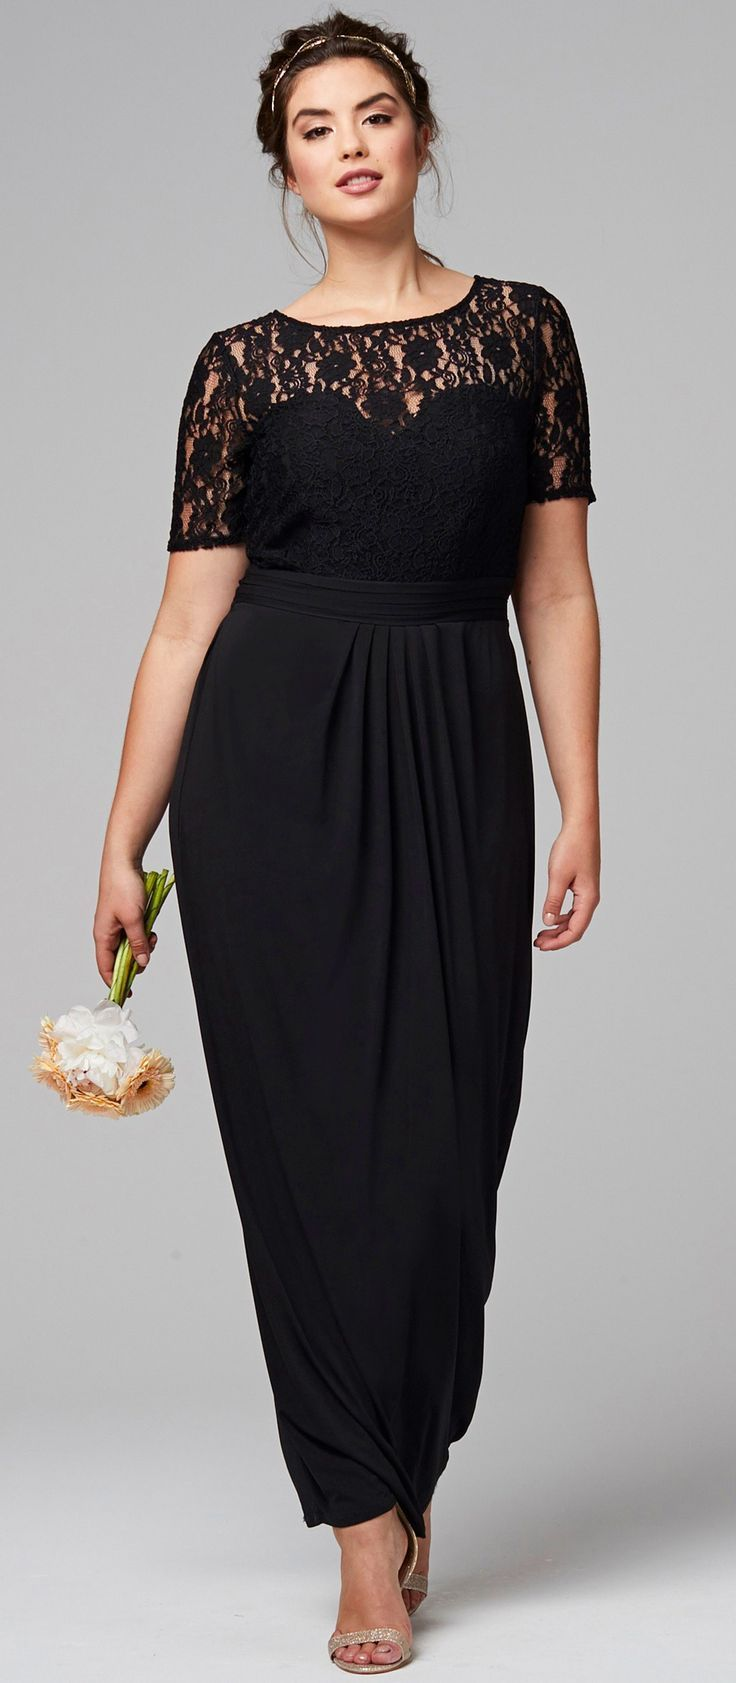 45 Plus Size Wedding Guest Dresses With Sleeves Tail Alexawebb Curvy Outfits Pinterest